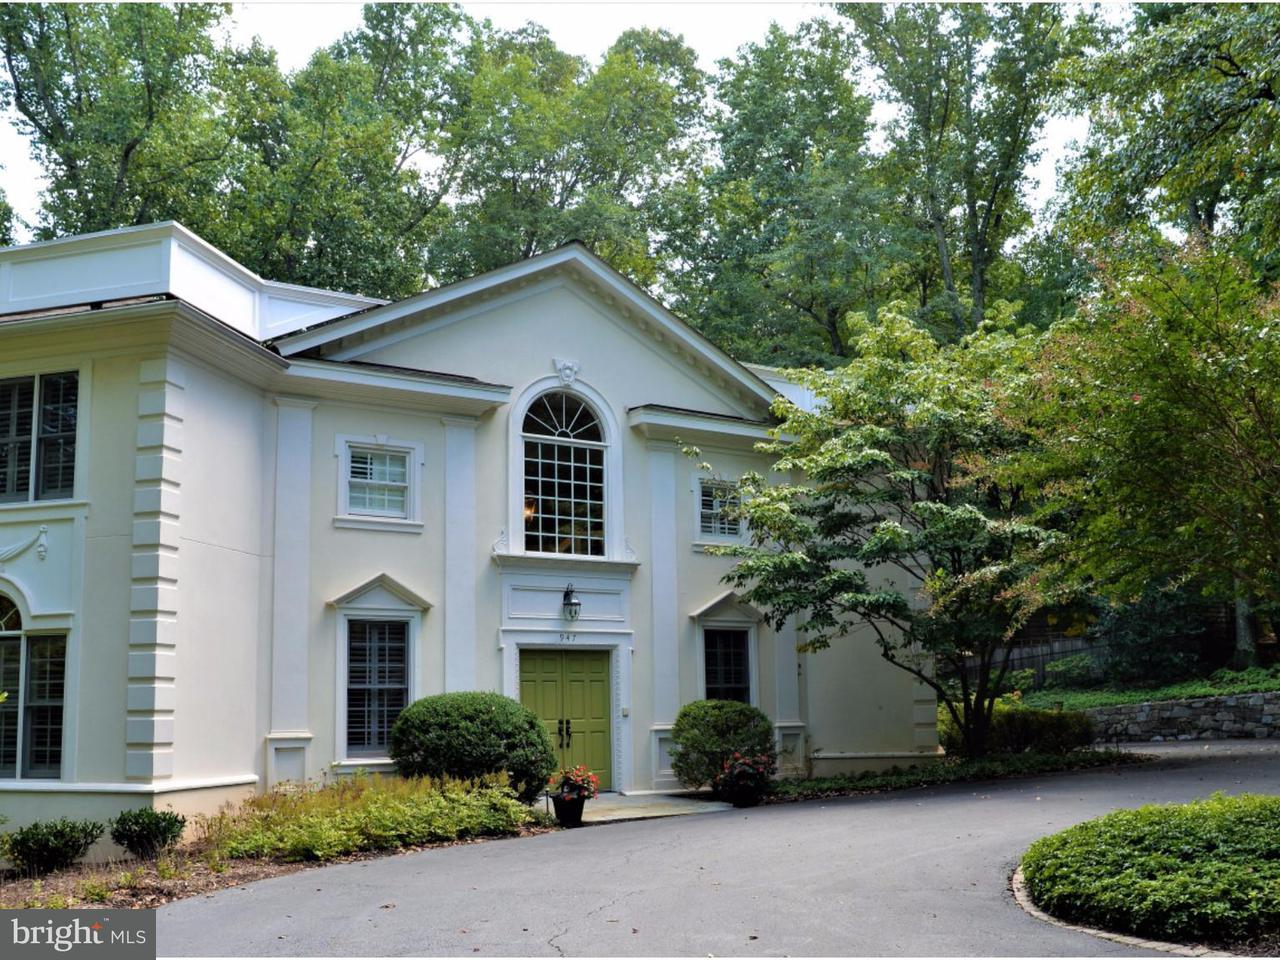 Single Family Home for Sale at 947 SWINKS MILL Road 947 SWINKS MILL Road McLean, Virginia 22102 United States